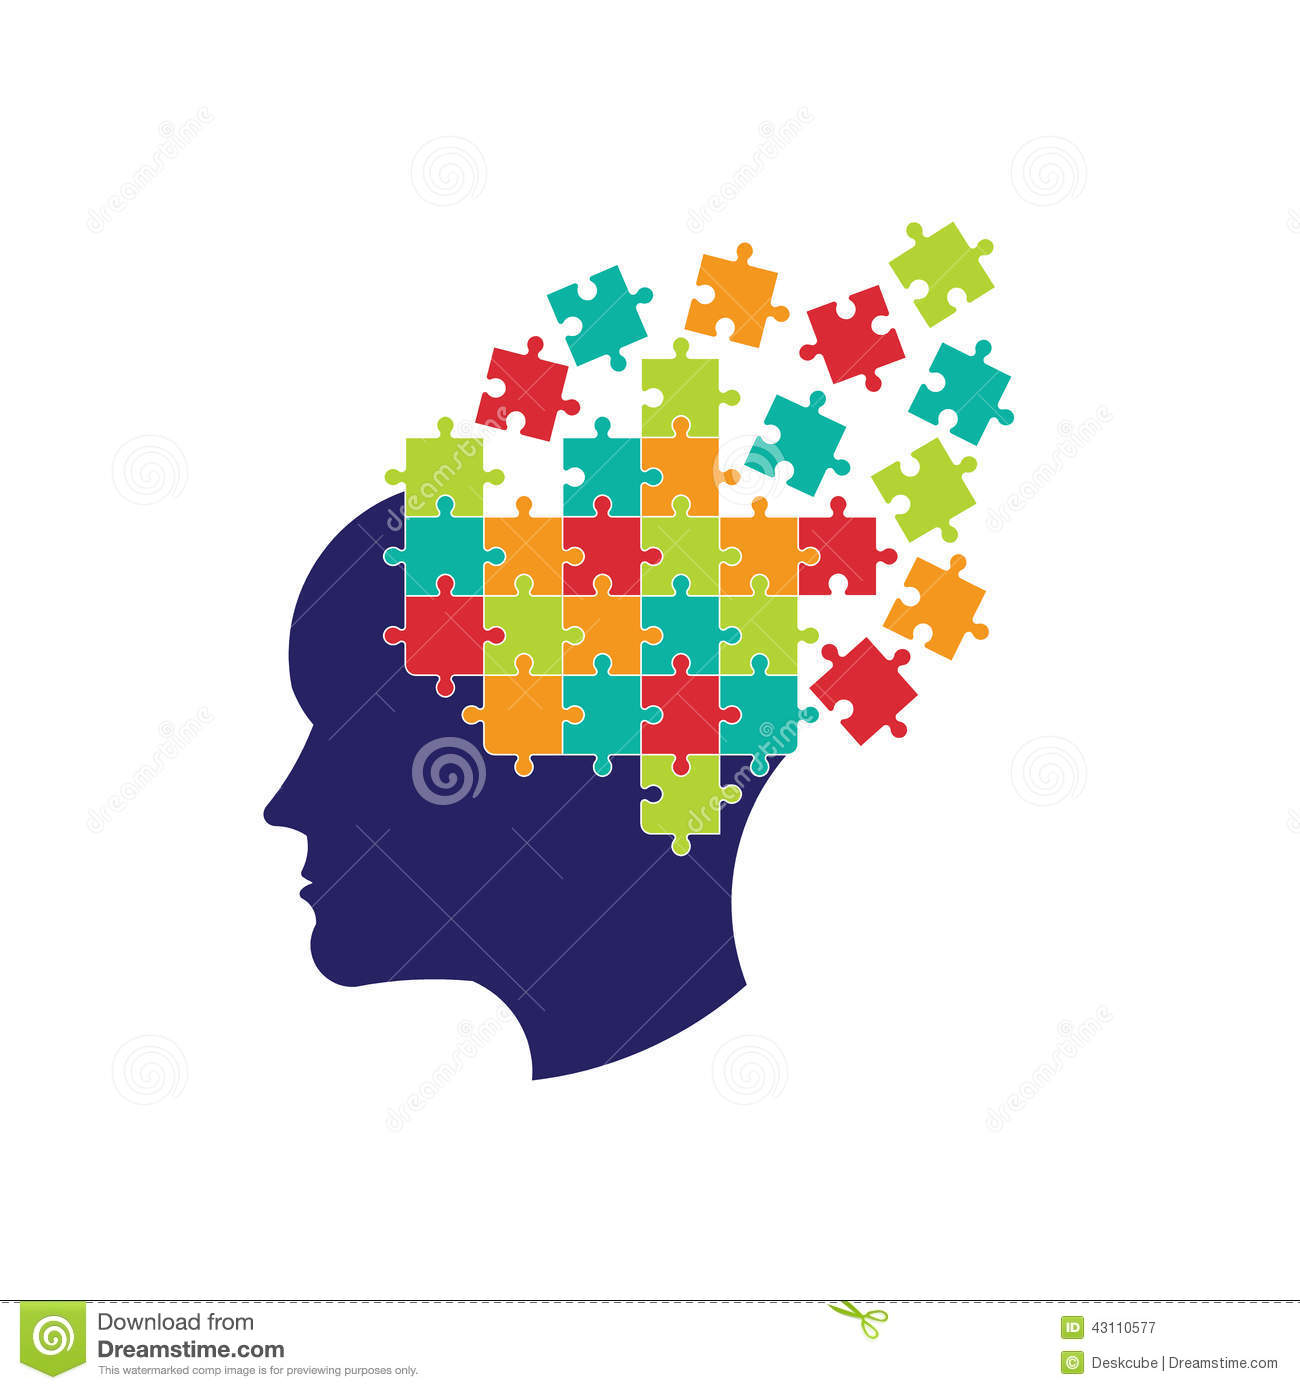 Concept of thought to solve brain with pieces of puzzle.